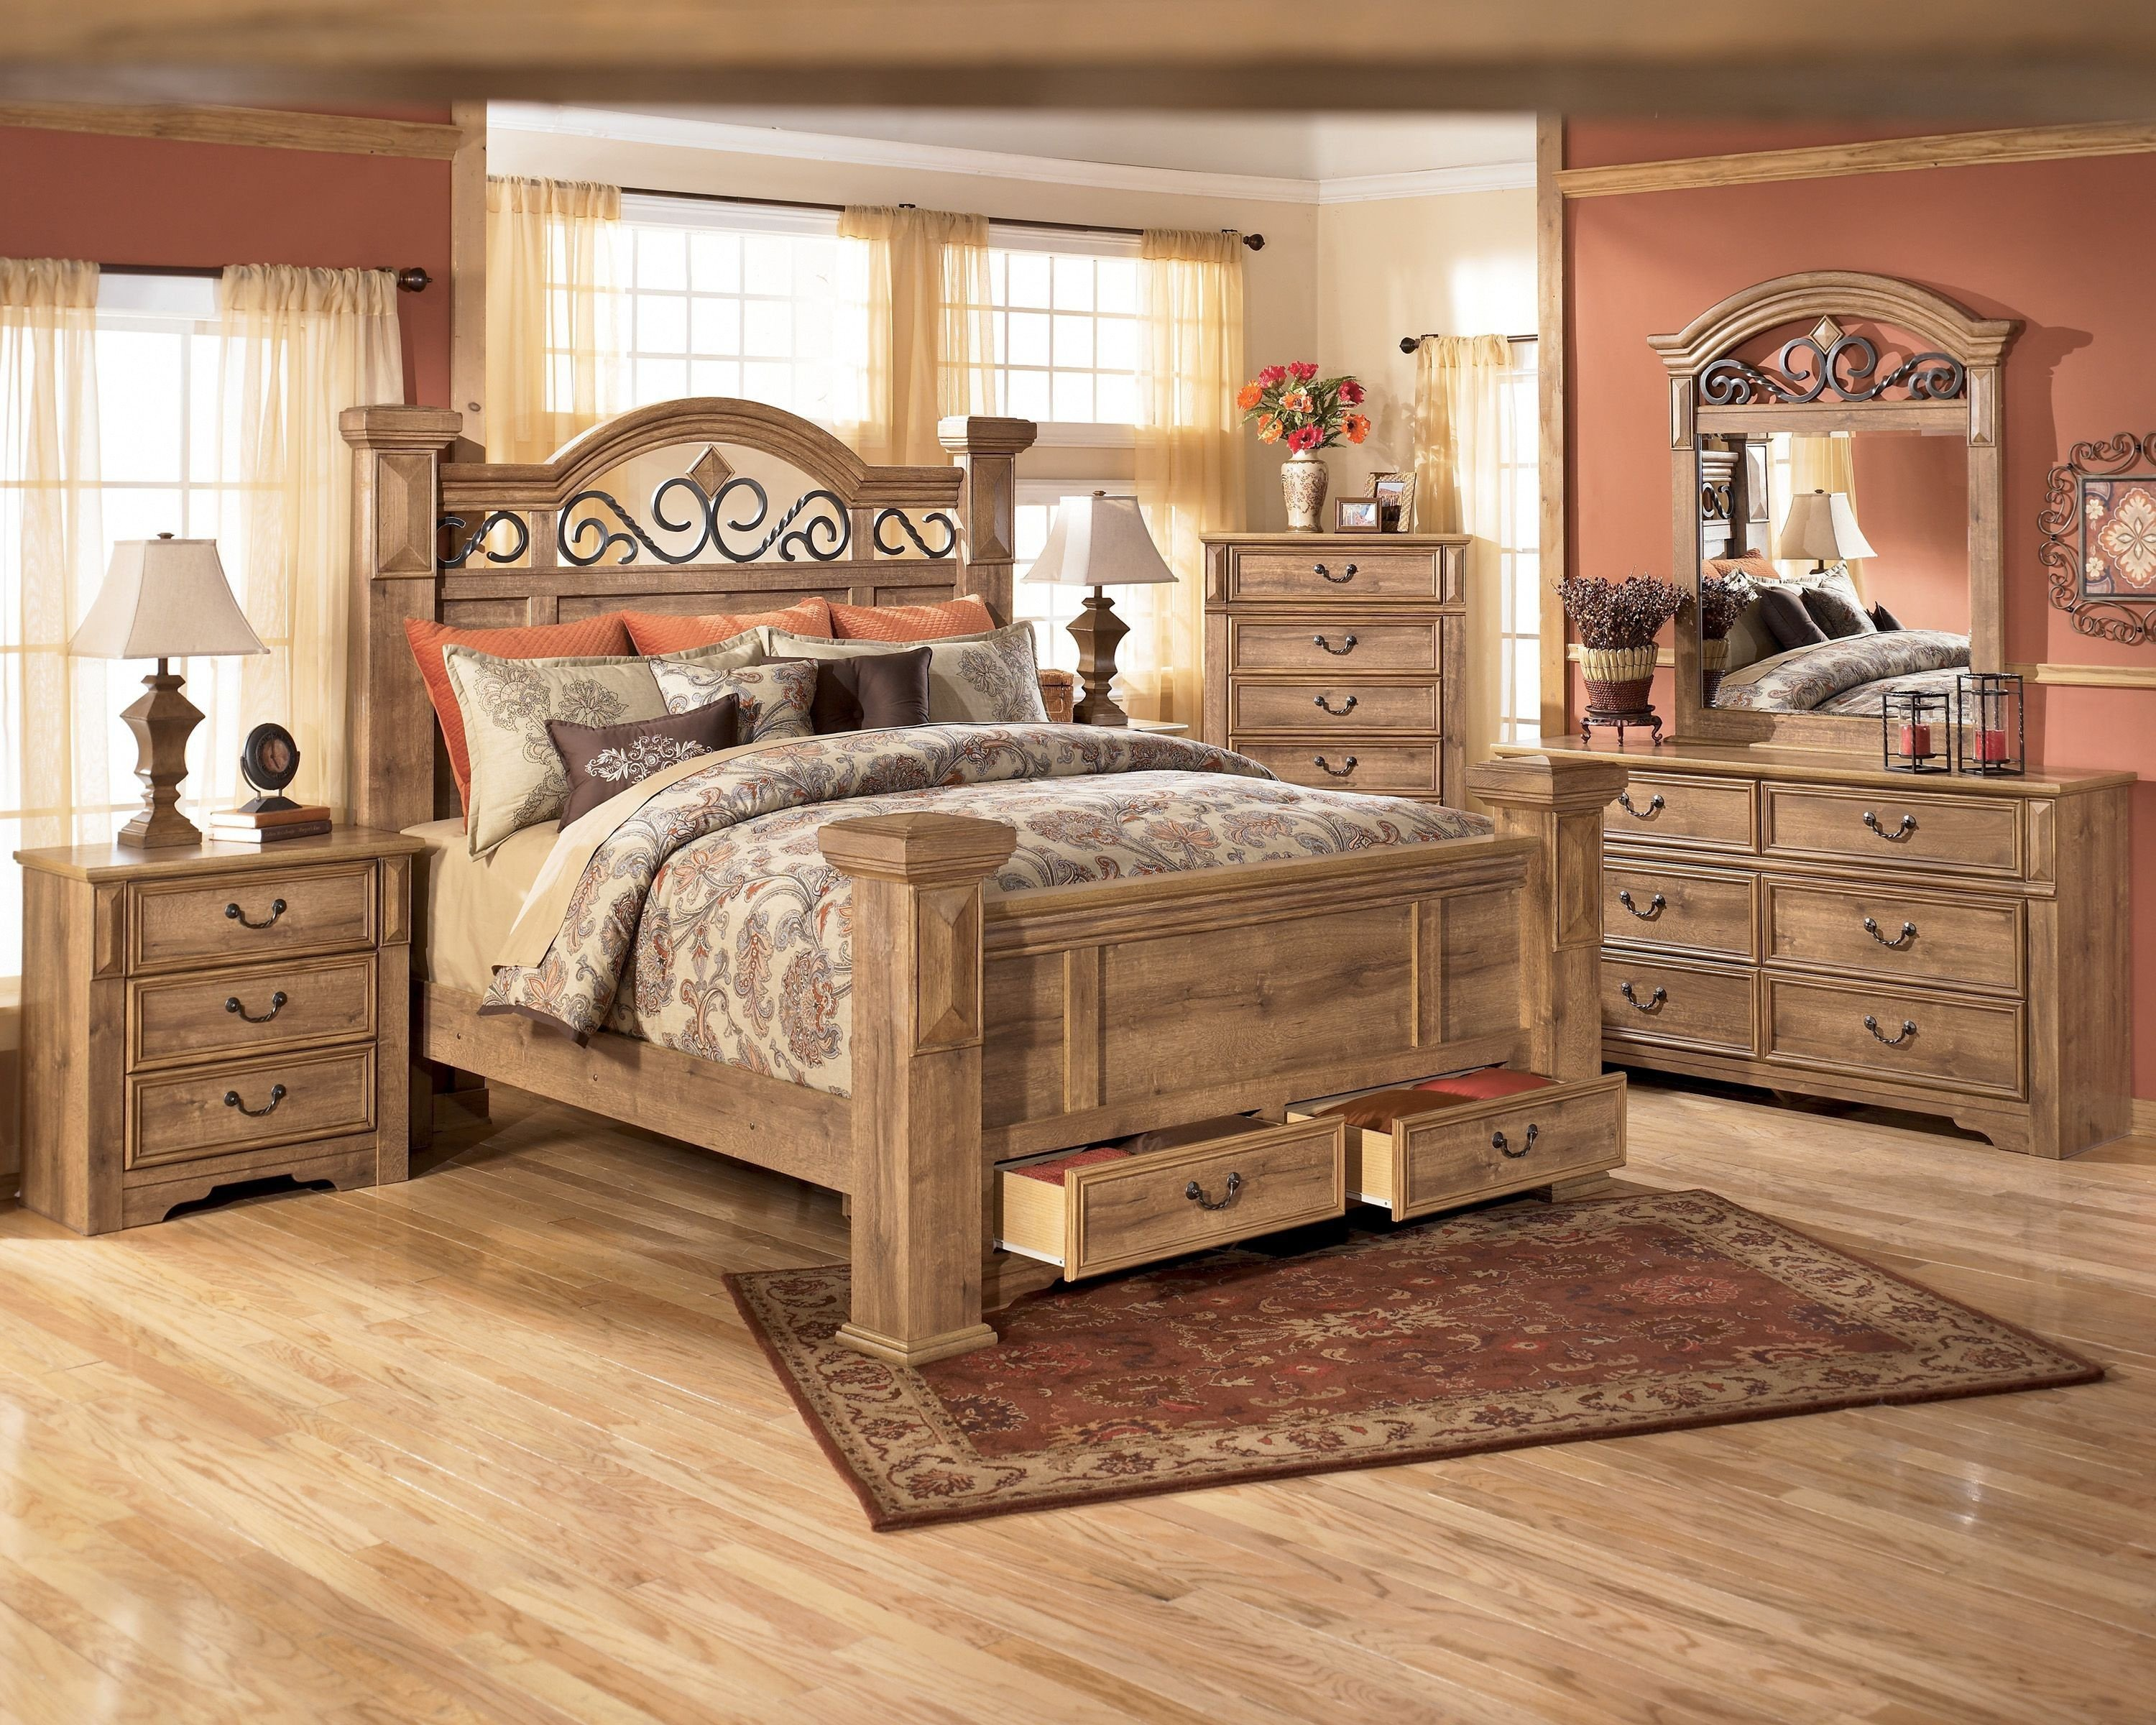 Ashley Millennium Bedroom Set Elegant Inspirational Rustic Bedroom Sets King Rustic Bedroom